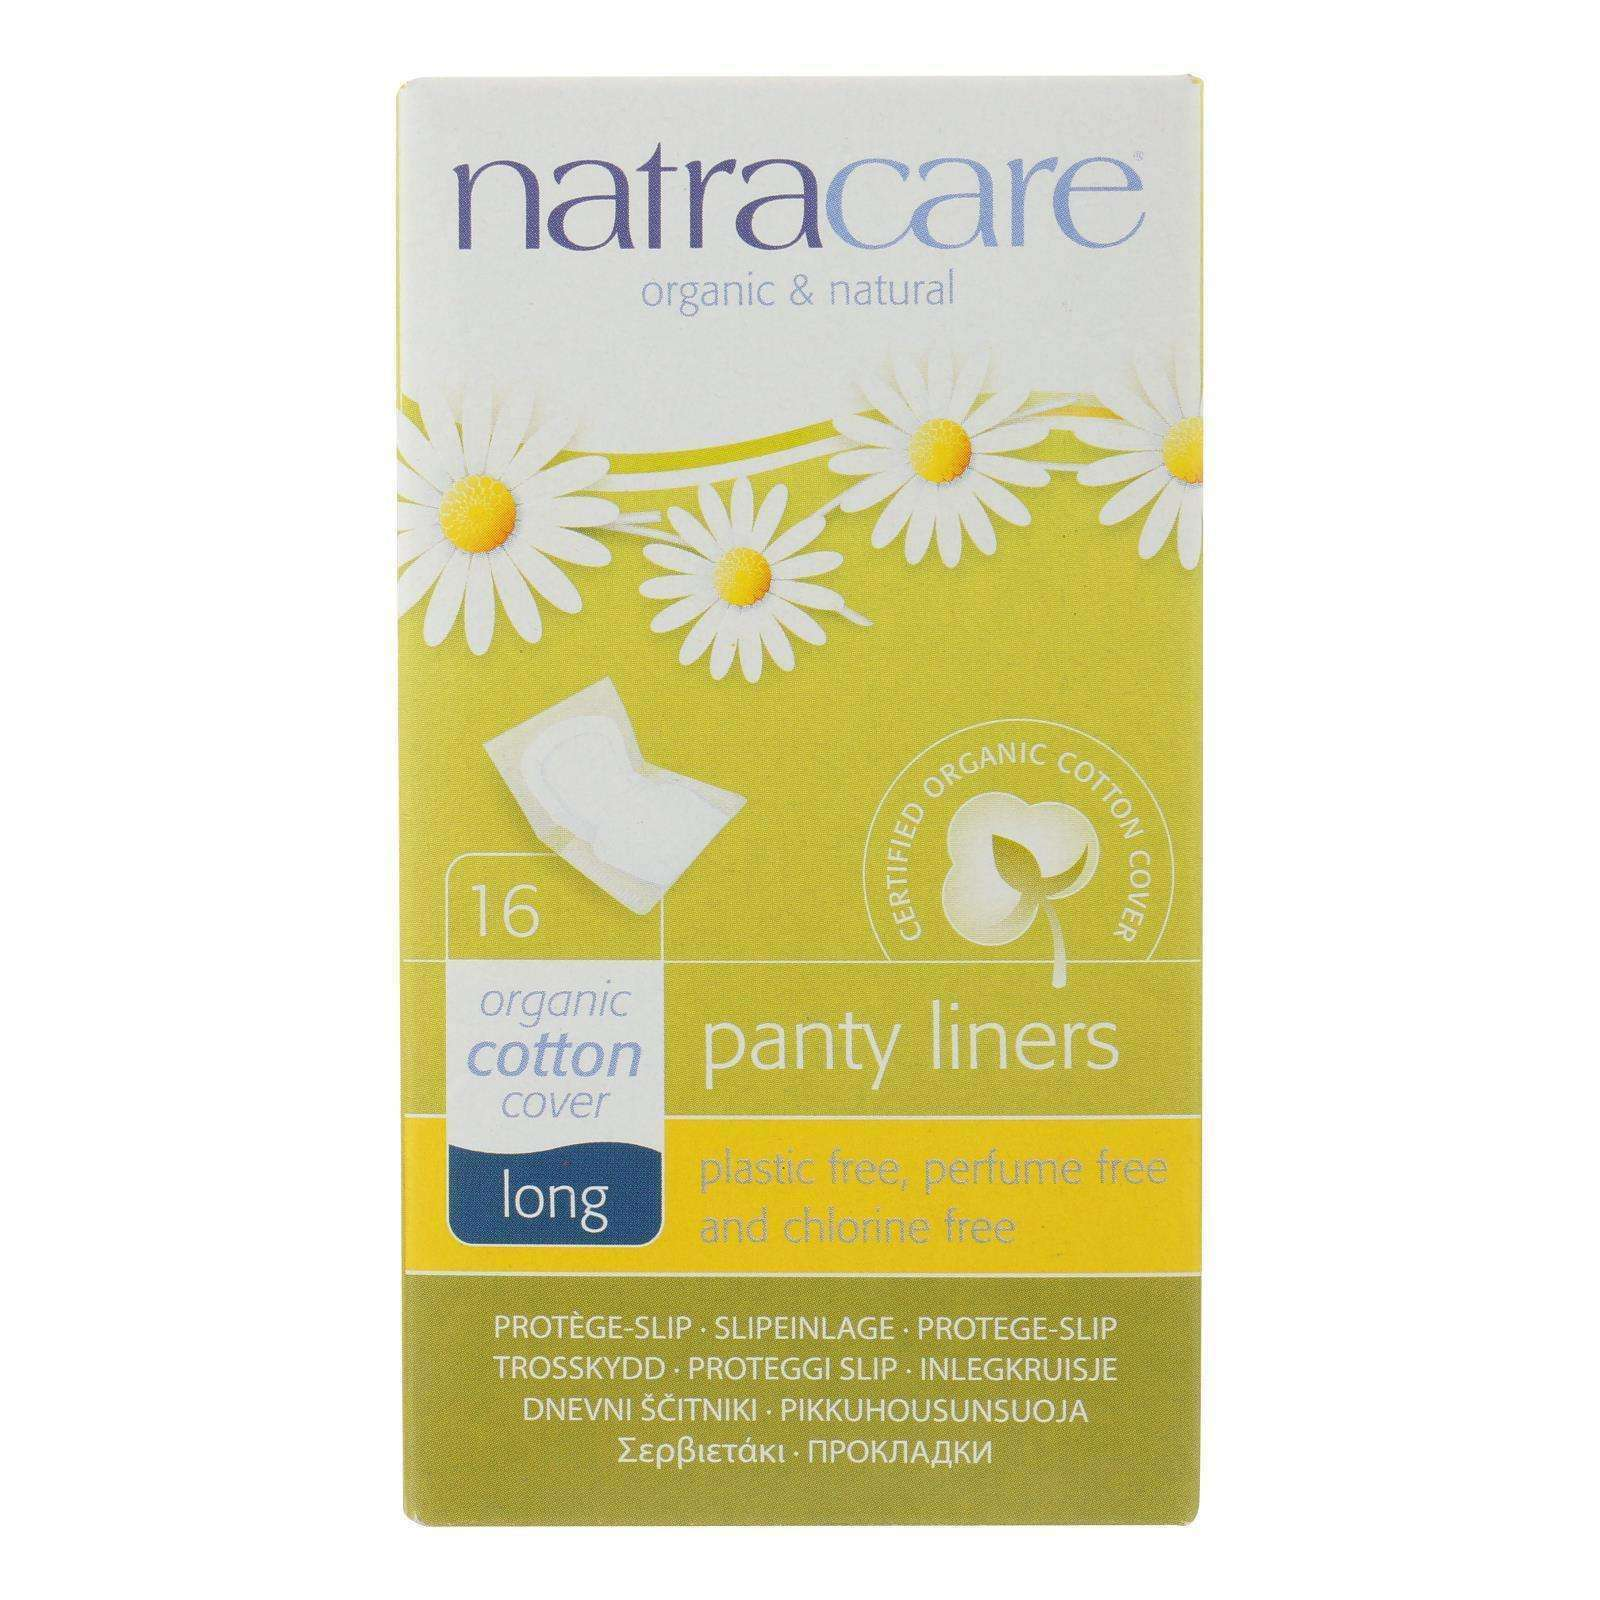 Natracare Panty Liners - Long - Wrapped - 16 Count - BeeGreen